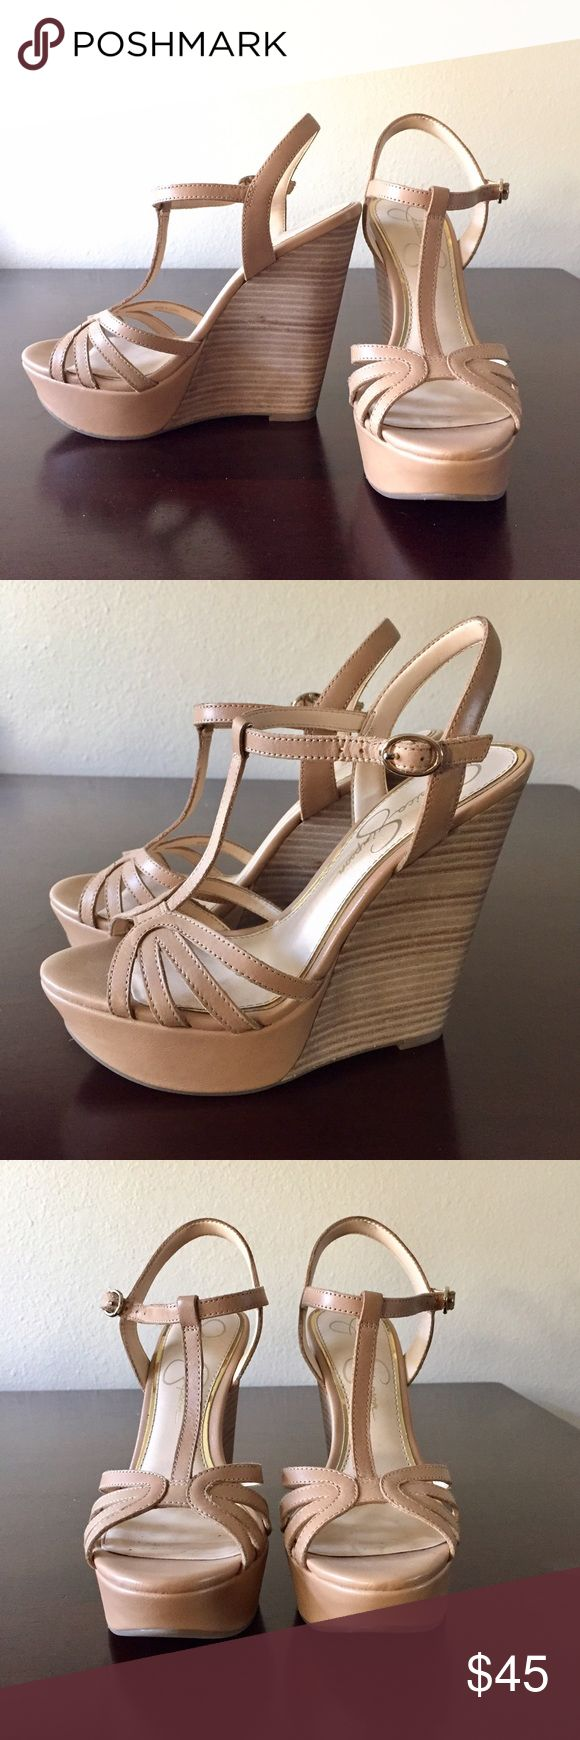 Jessica Simpson Nude Wedge Sandals These wedges are cute, comfortable, and give great height! Adjustable strap and cute design. Worn only once or twice. In excellent condition! Size 6, true to size. I really love these shoes, but have too many nude wedges, and need to edit 😓 Jessica Simpson Shoes Sandals